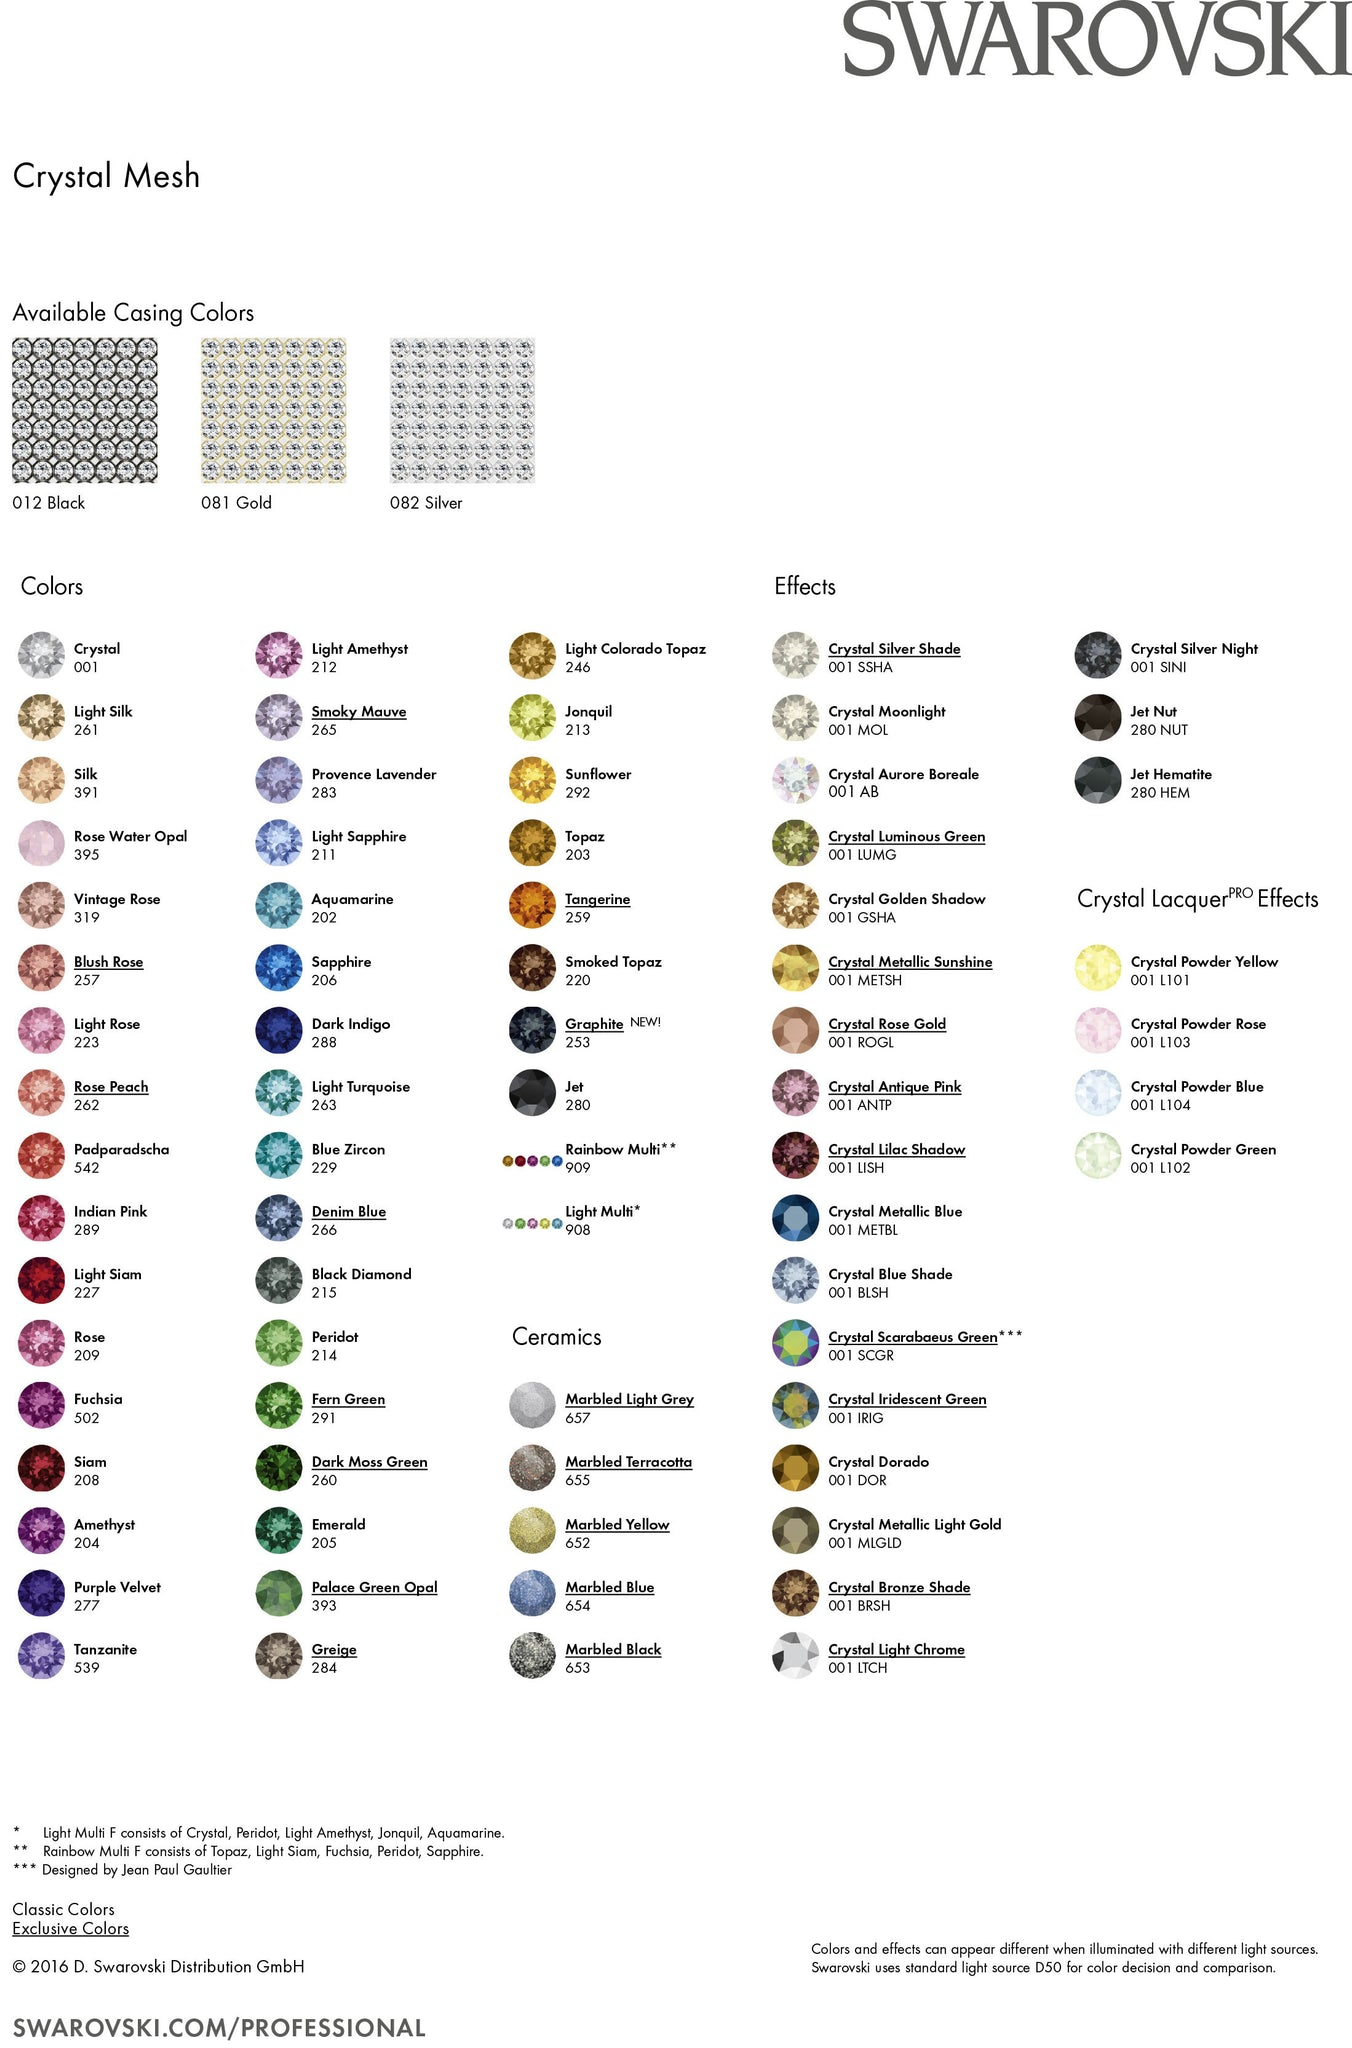 Swarovski Crystal Mesh Colour Chart 2016